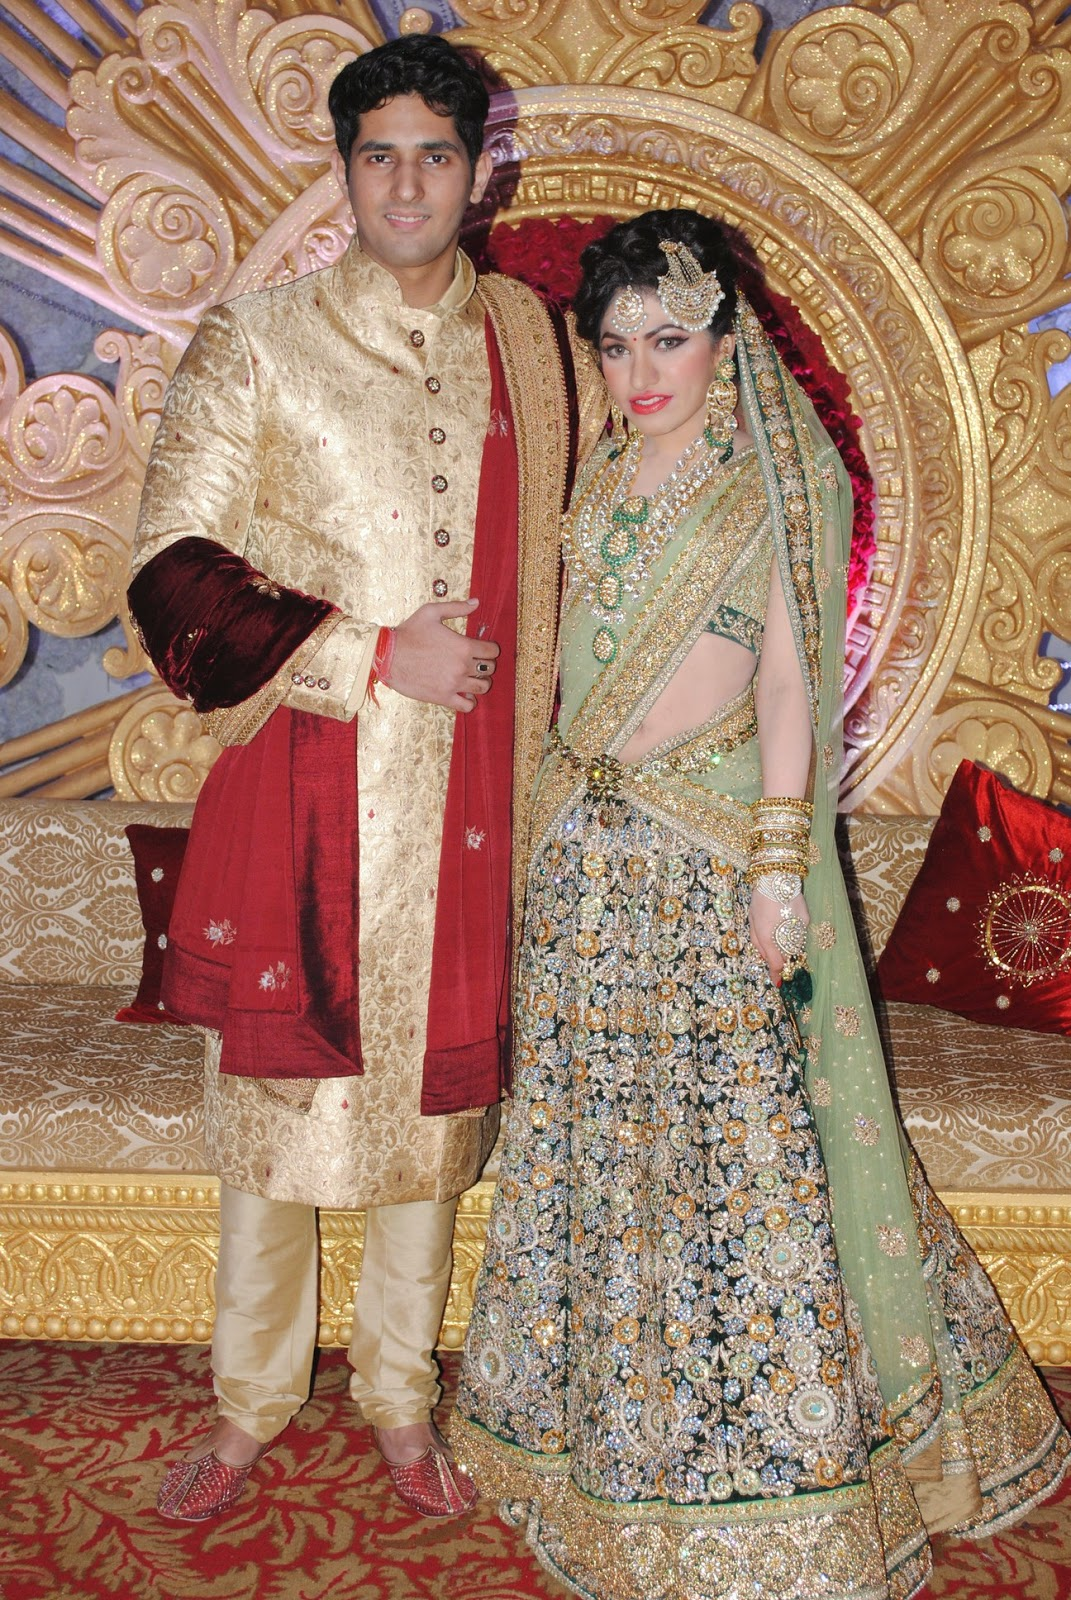 Gulshan Kumar's daughter Tulsi Kumar's wedding